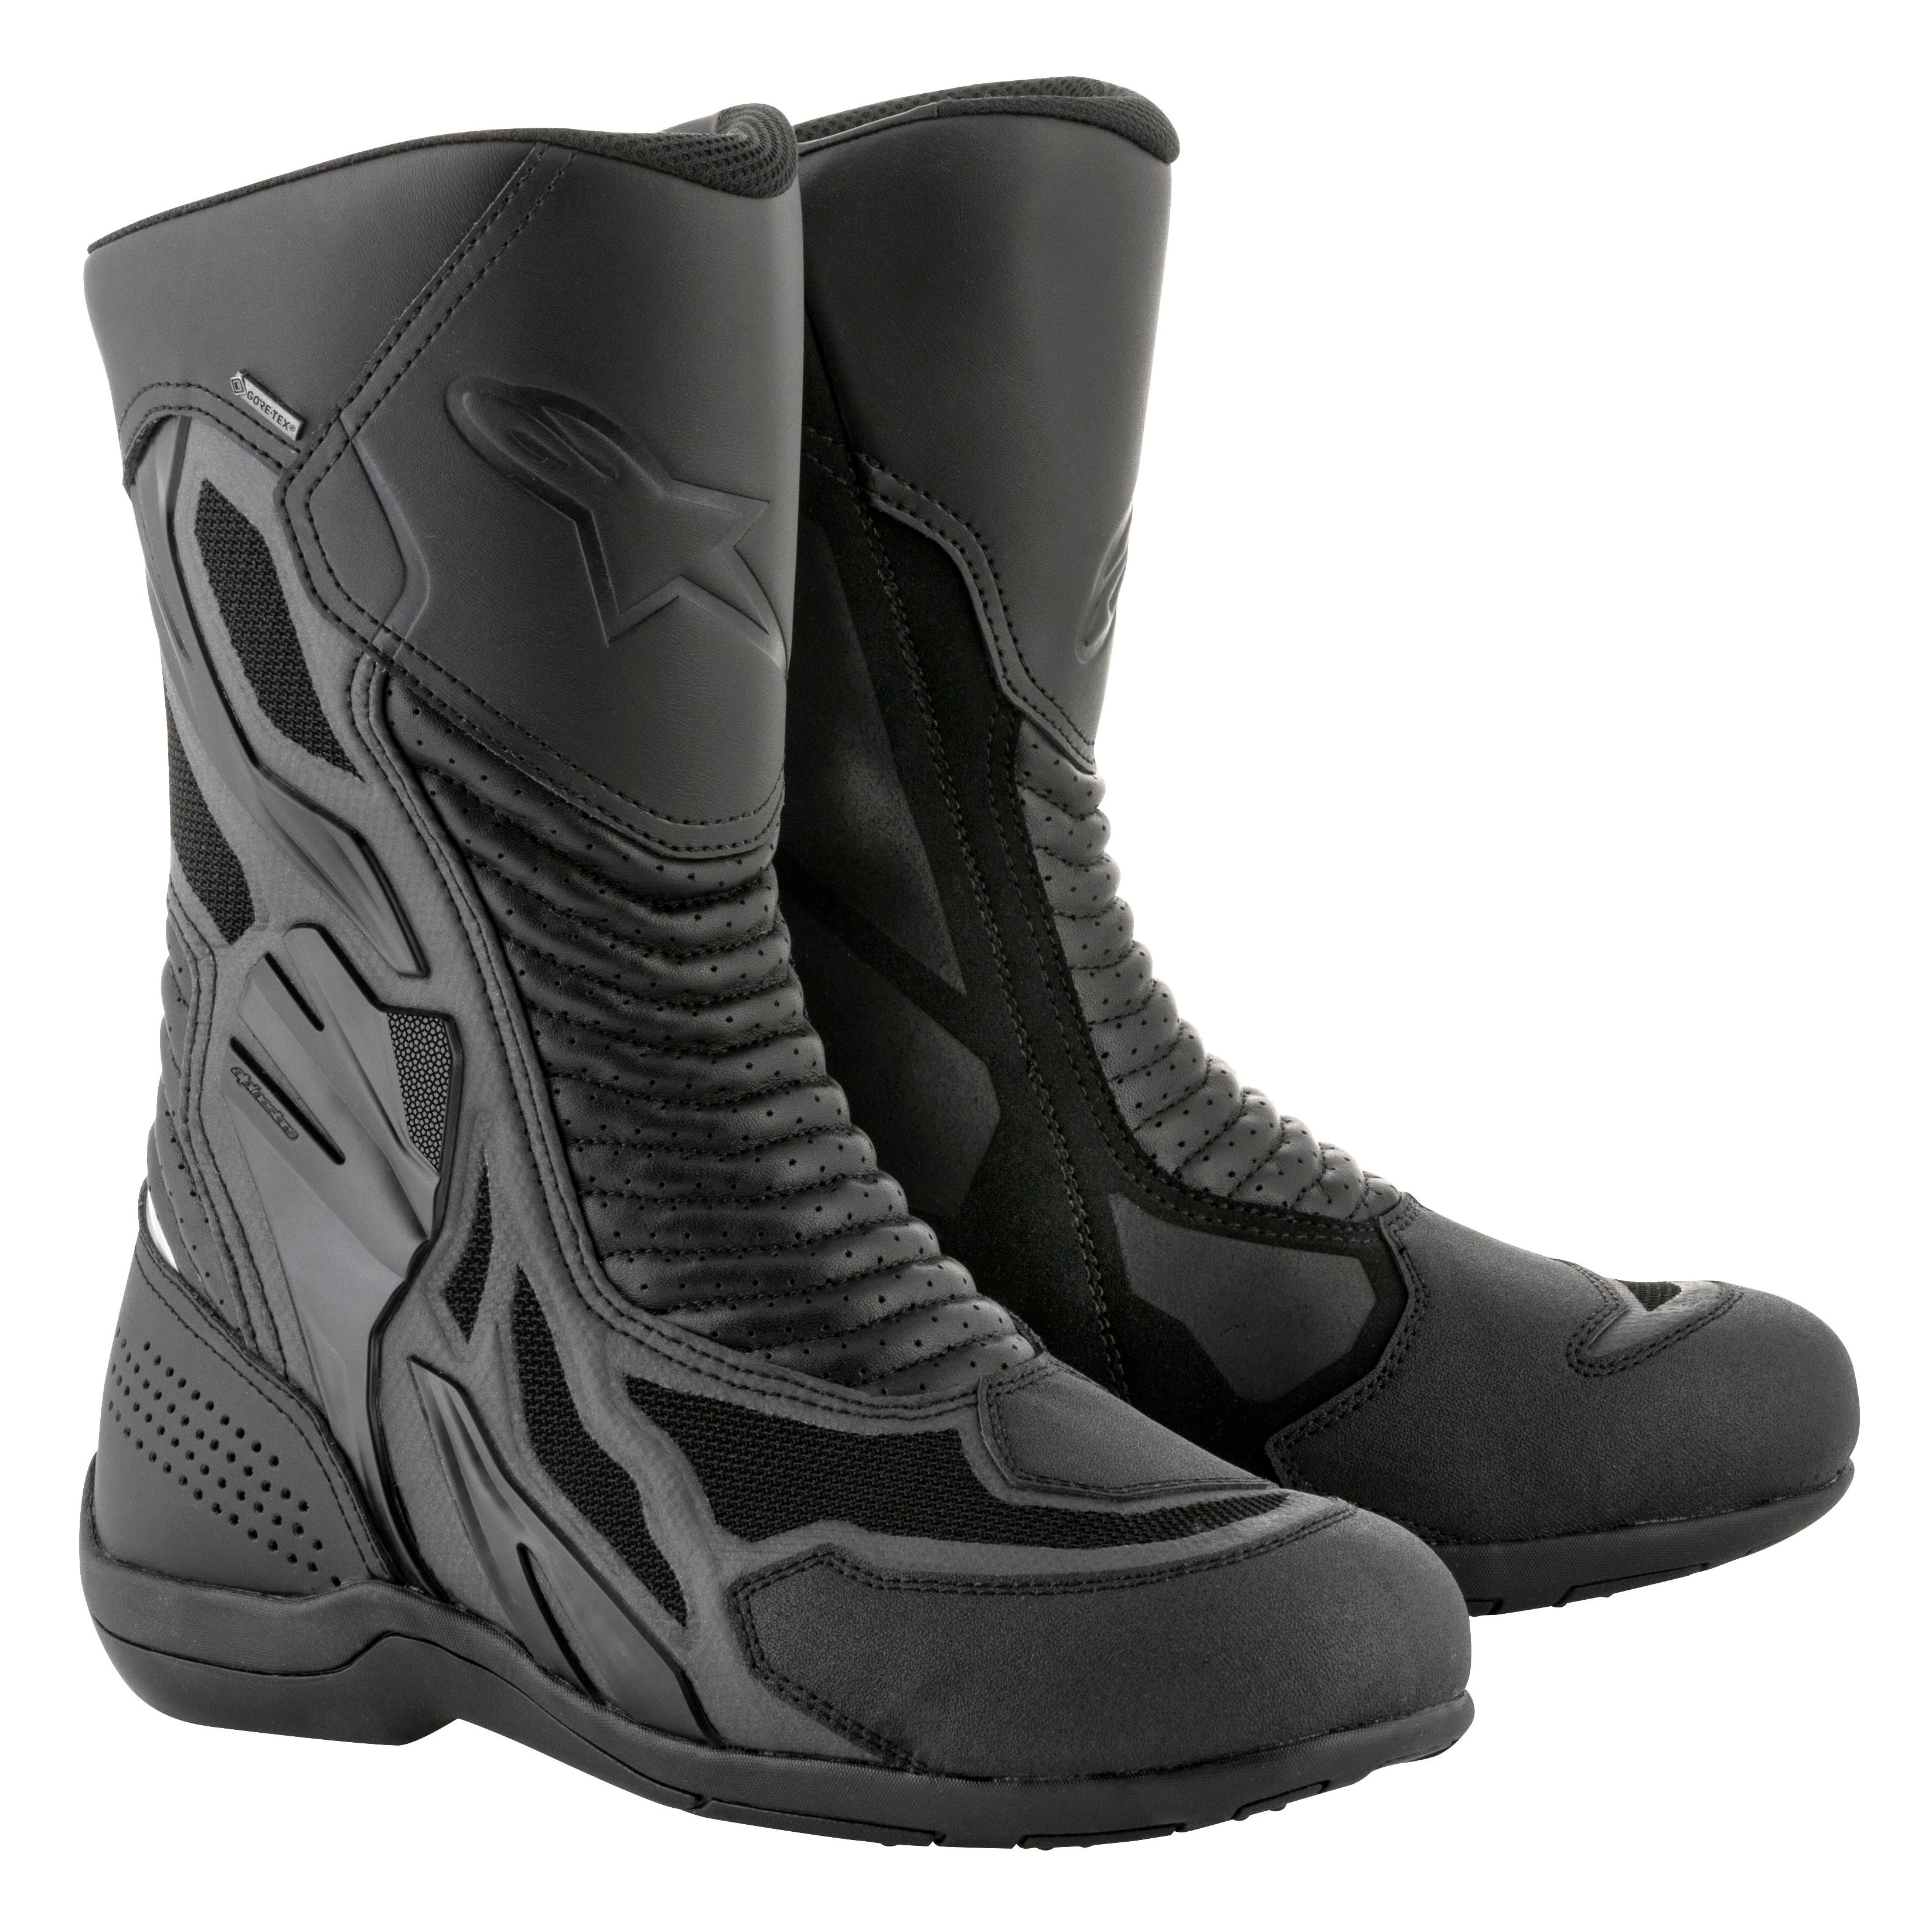 Bottes Alpinestars AIR PLUS V2 XCR GORETEX